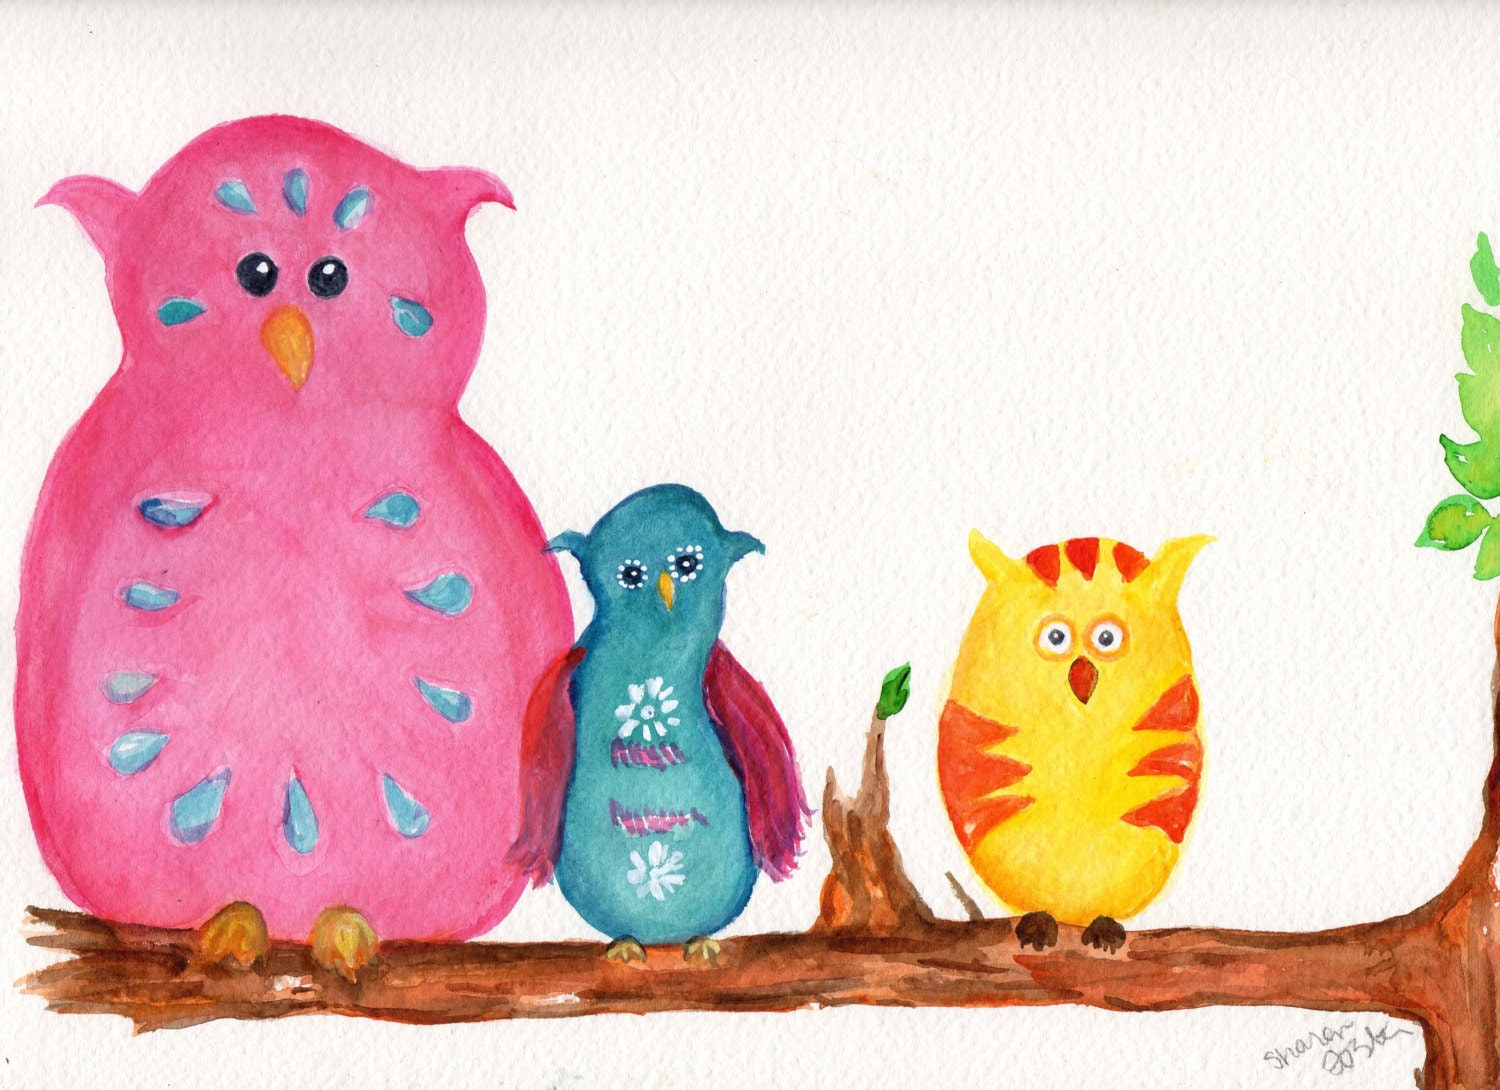 Sharon Foster, Artist on Etsy shows her colorful owls